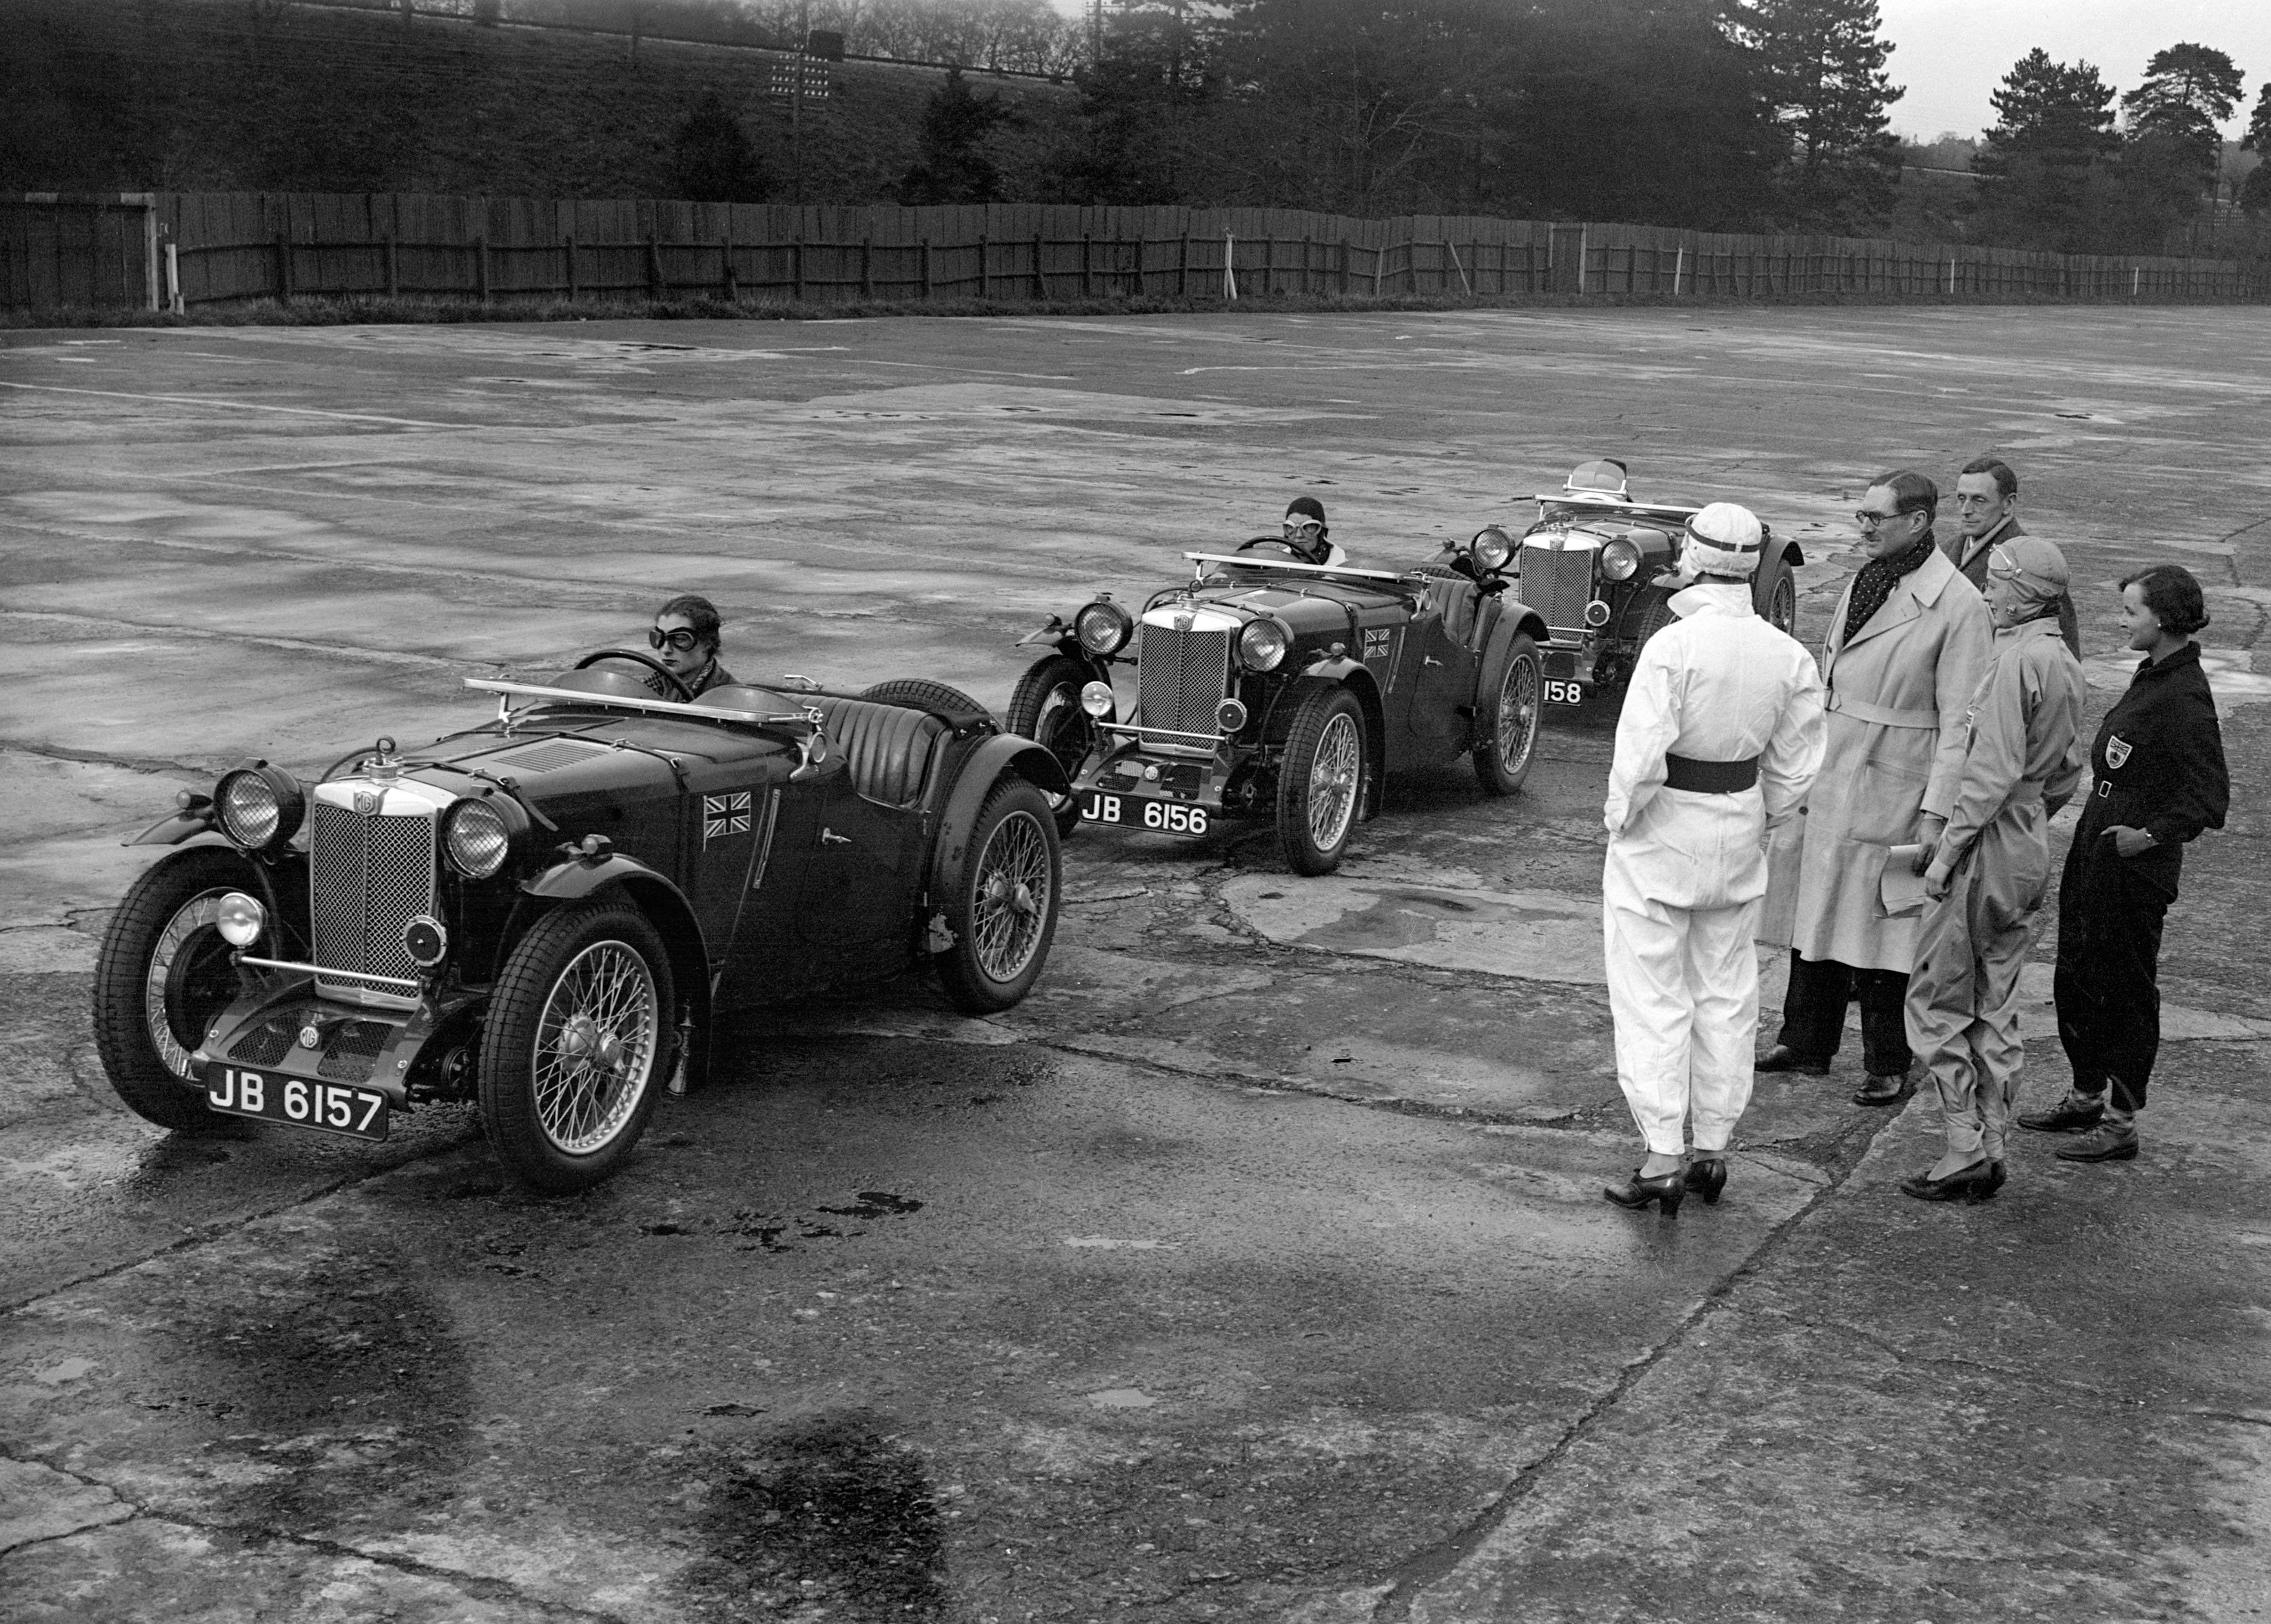 The-MG-womens-team-practising-for-Le-Mans-at-Brooklands..jpg